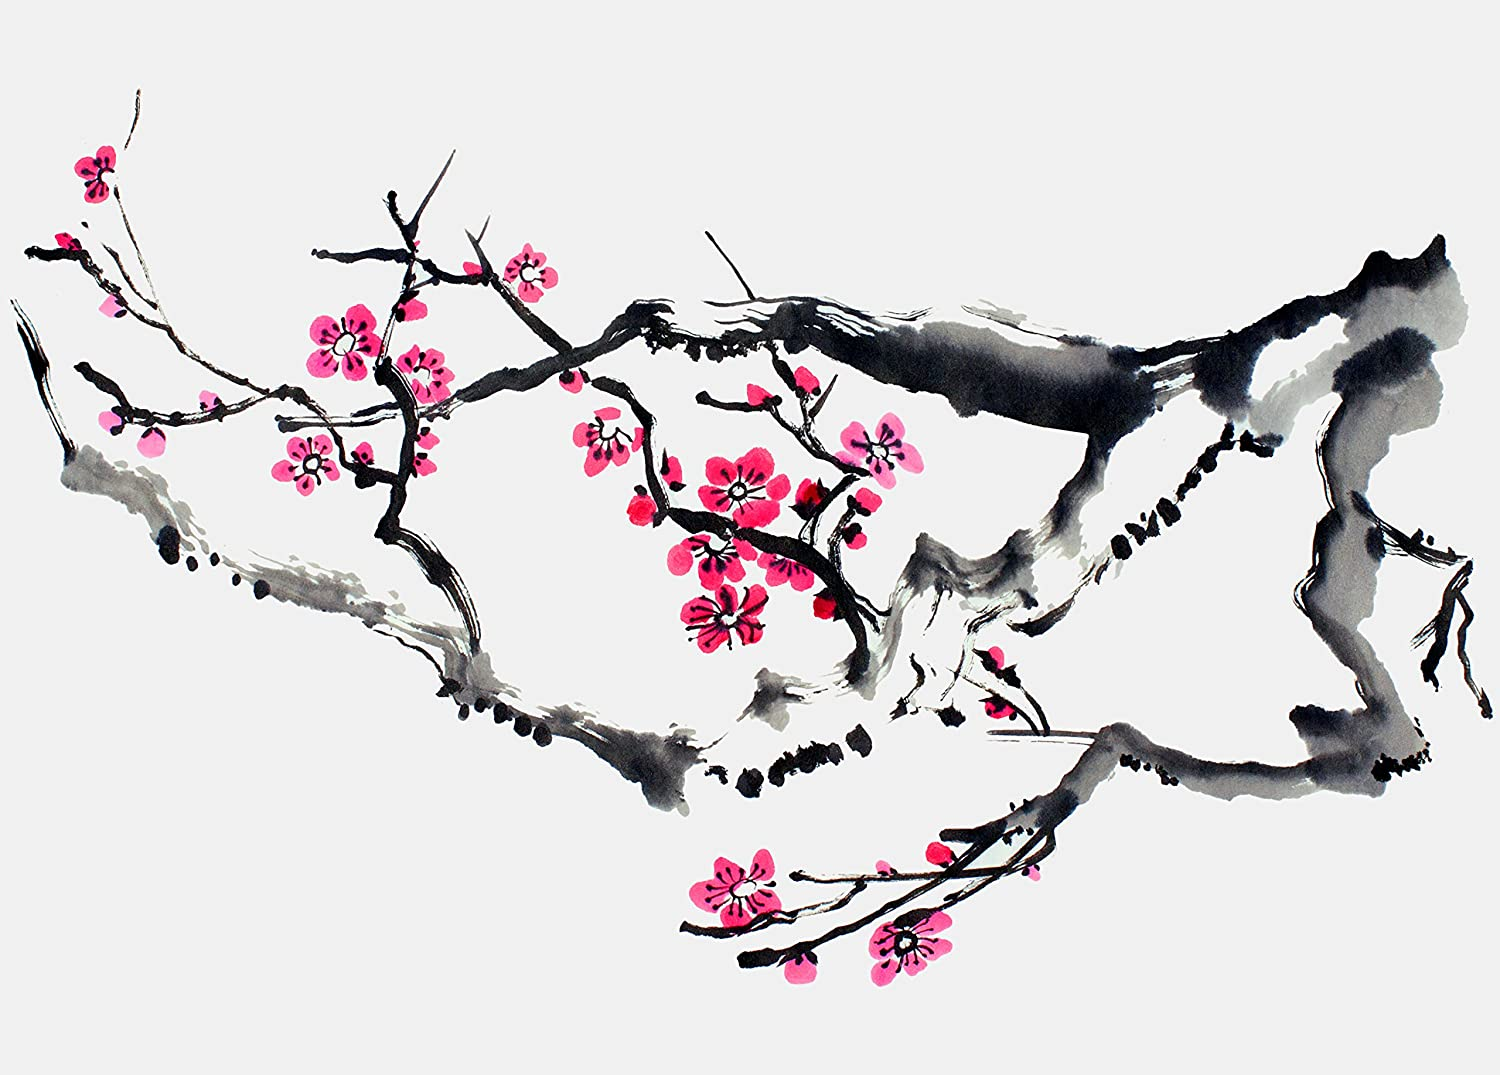 Butterflies Spring Celebration II Floral Tree Wall Picture 8x10 Art Print